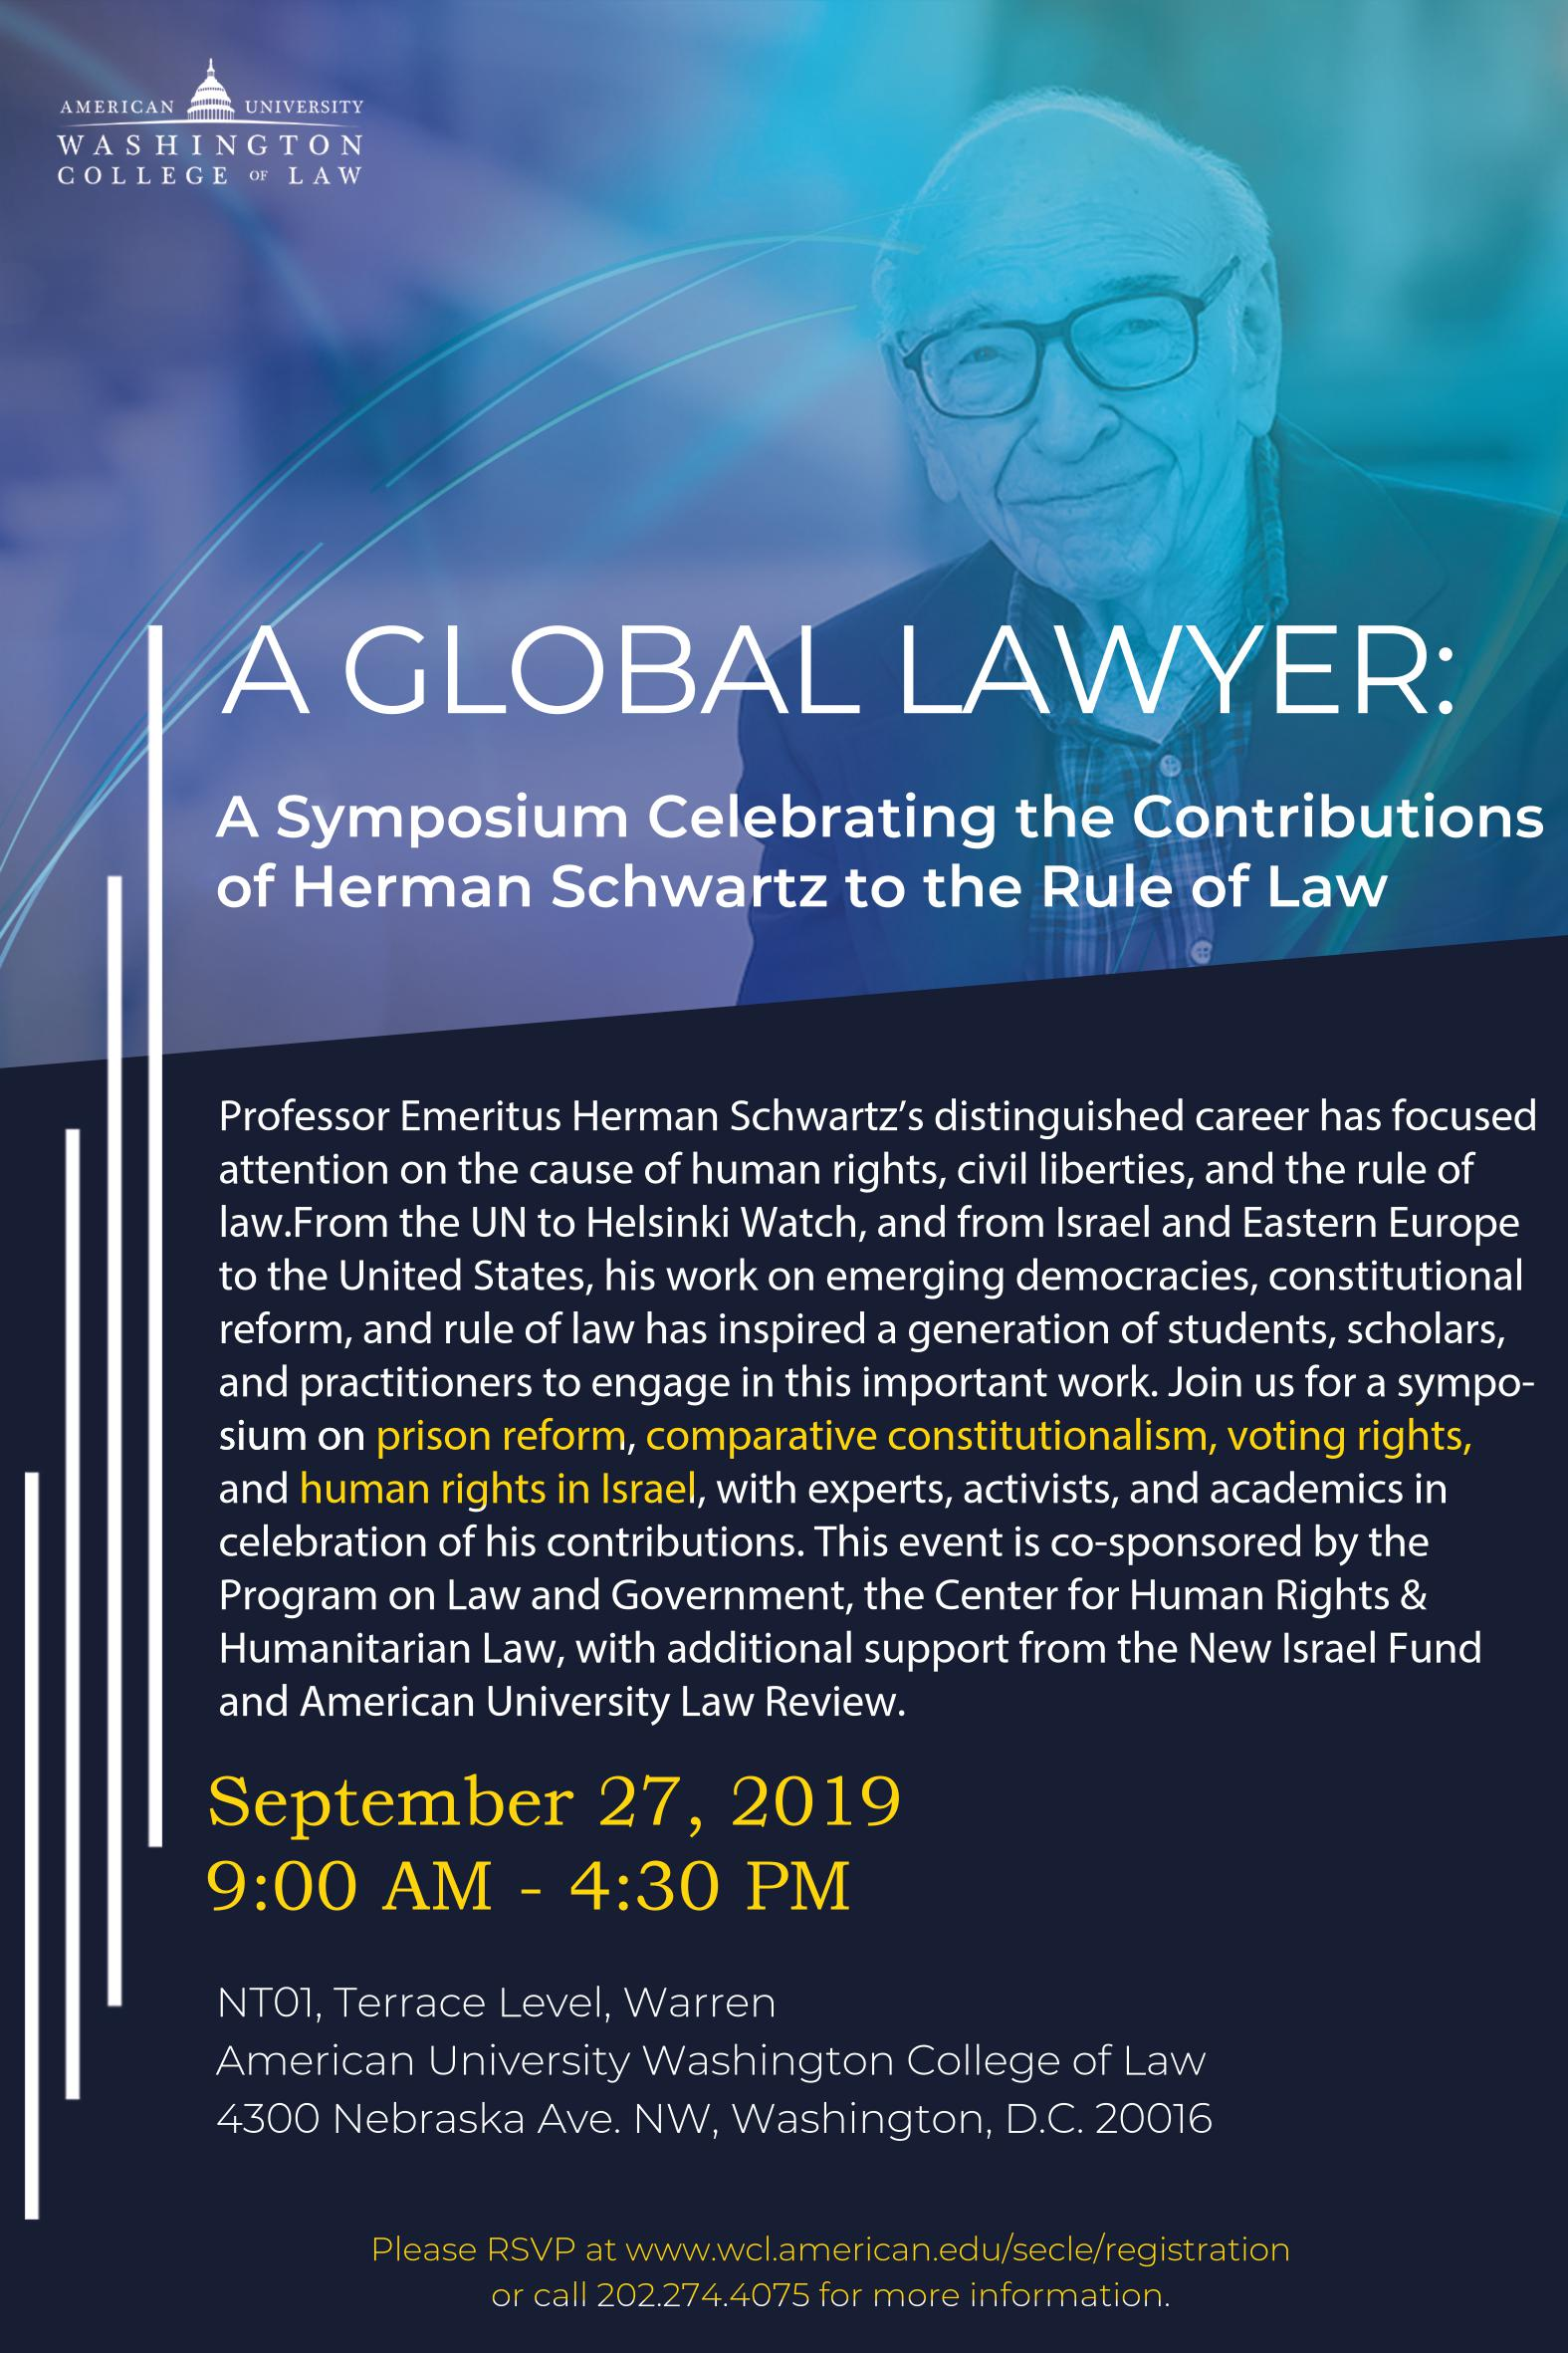 A Global Lawyer: A Symposium Celebrating the Contributions of Herman Schwartz to the Rule of Law